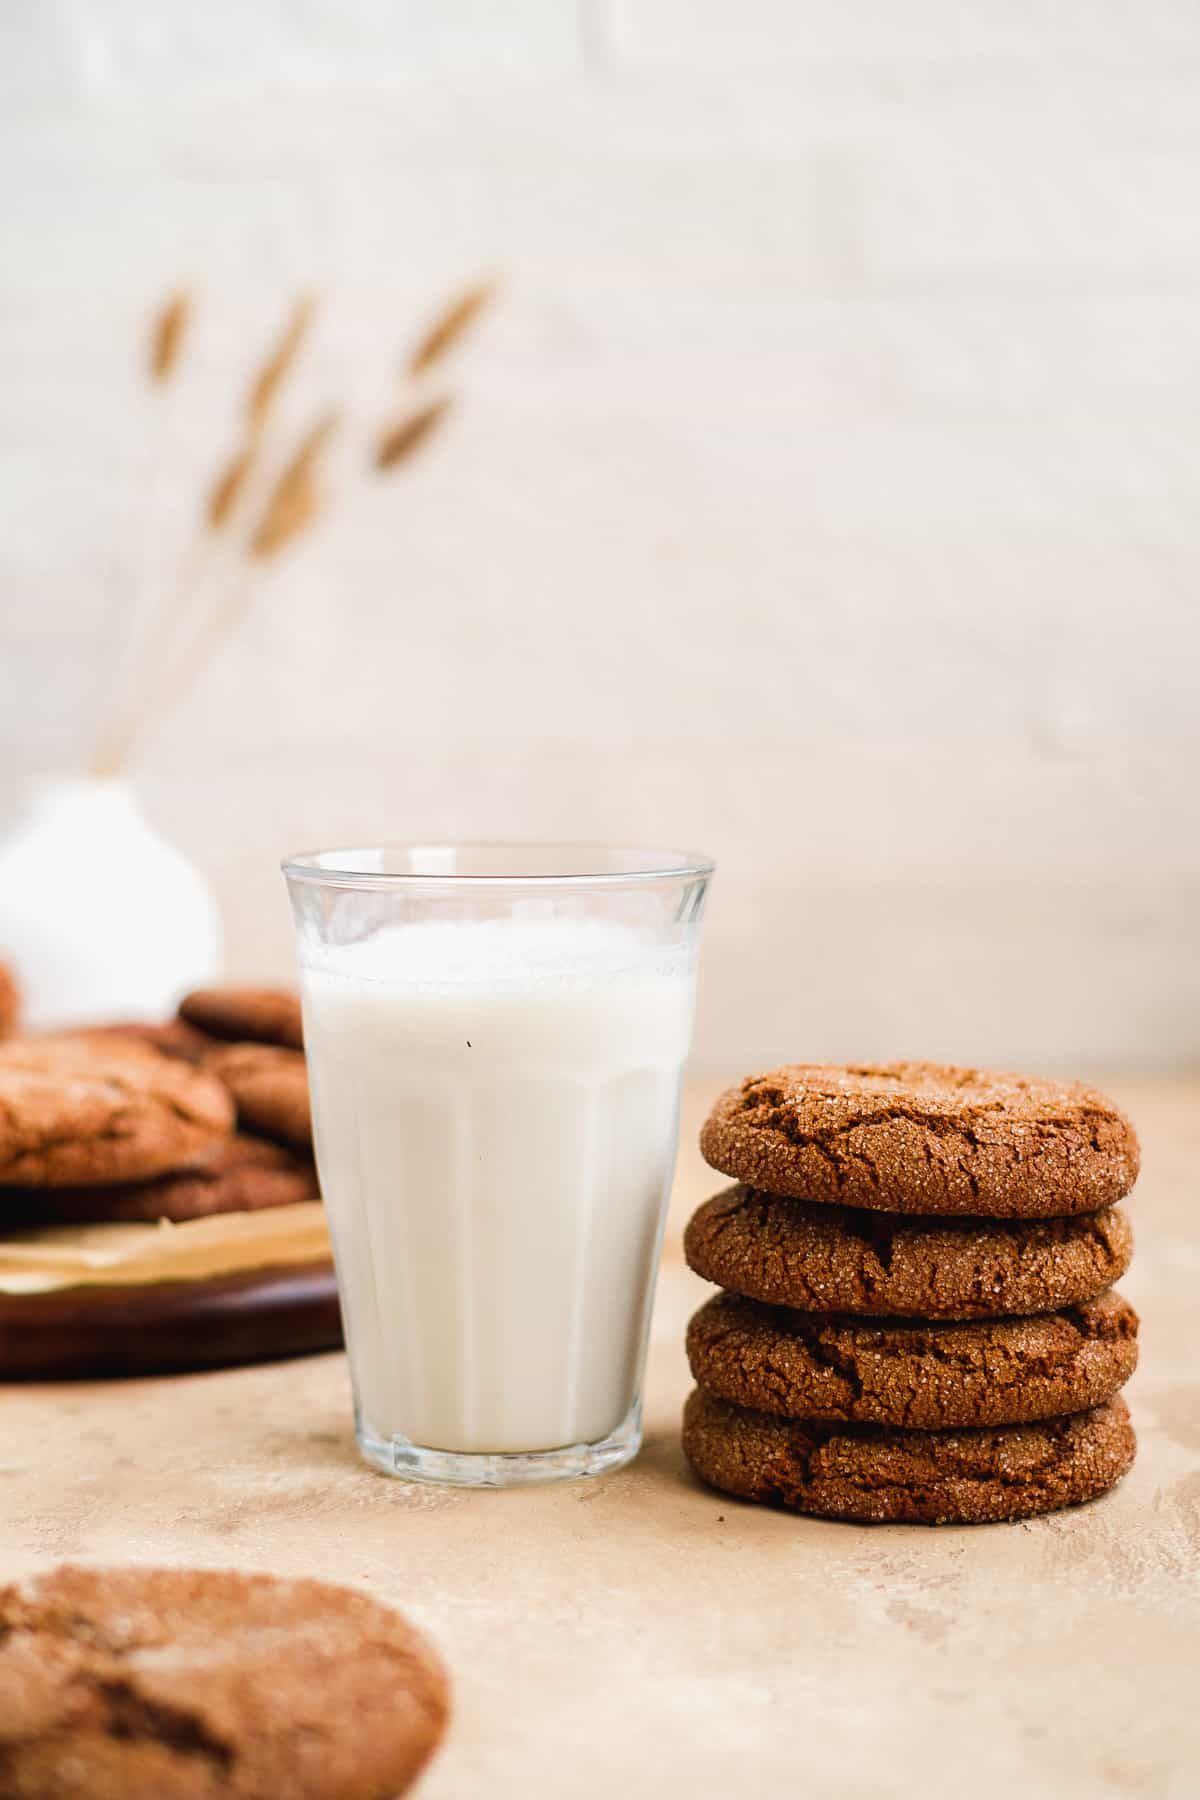 Side view of 4 stacked Soft and Chewy Ginger Snap Cookies sitting next to a cold glass of milk.  A plate of additional cookies is in the background.